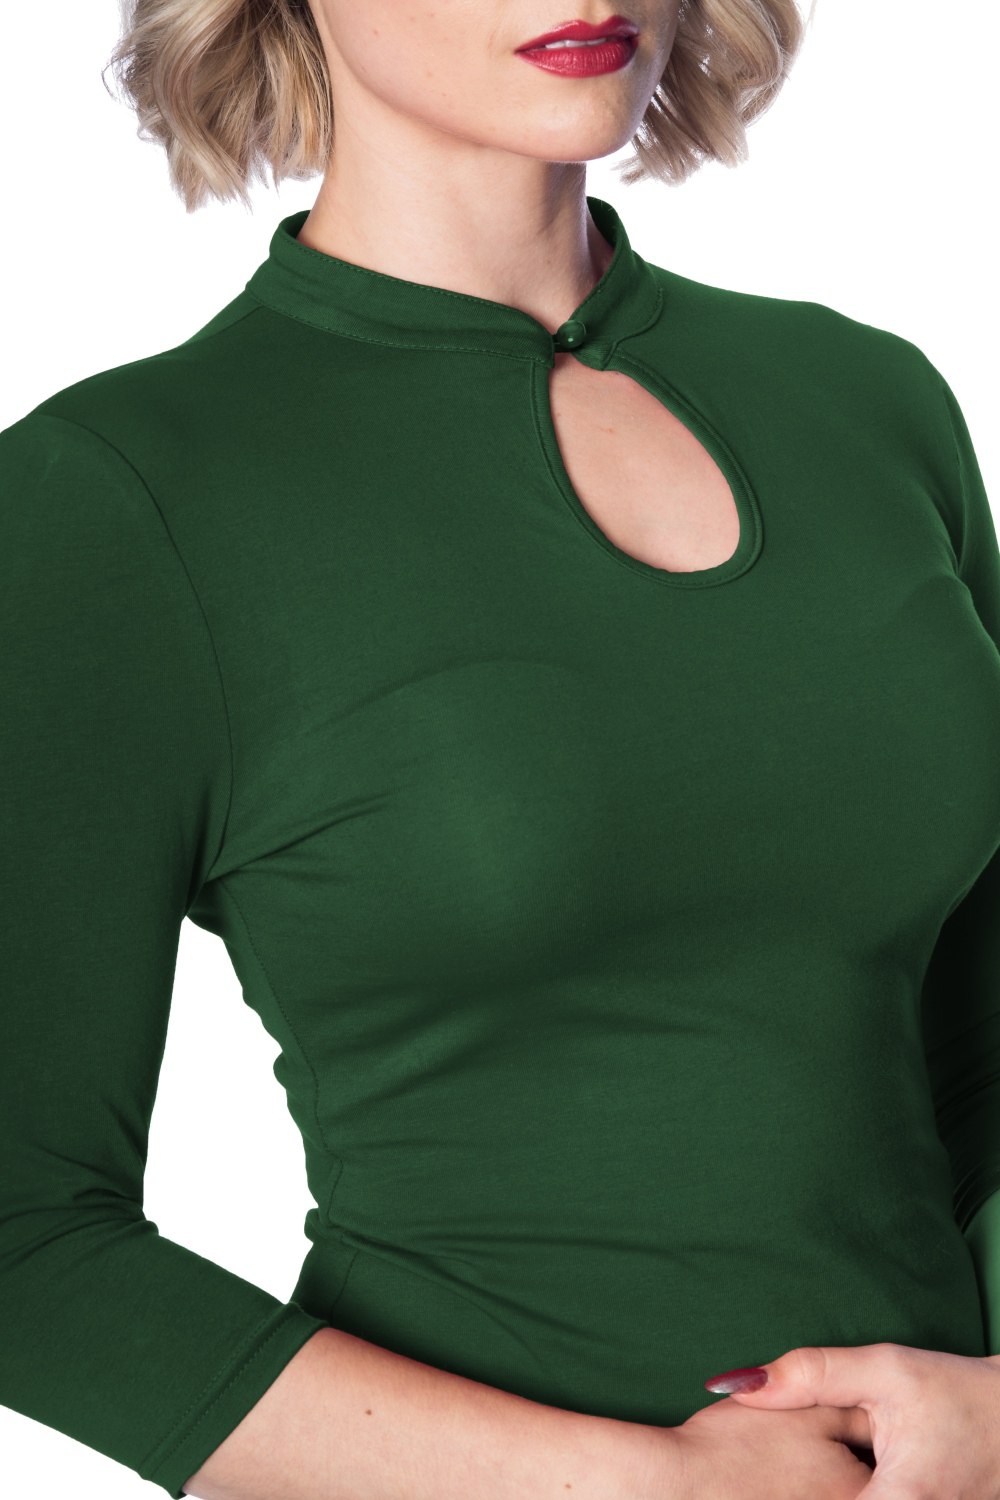 Banned Retro Green 50s Mandarin Collar Top